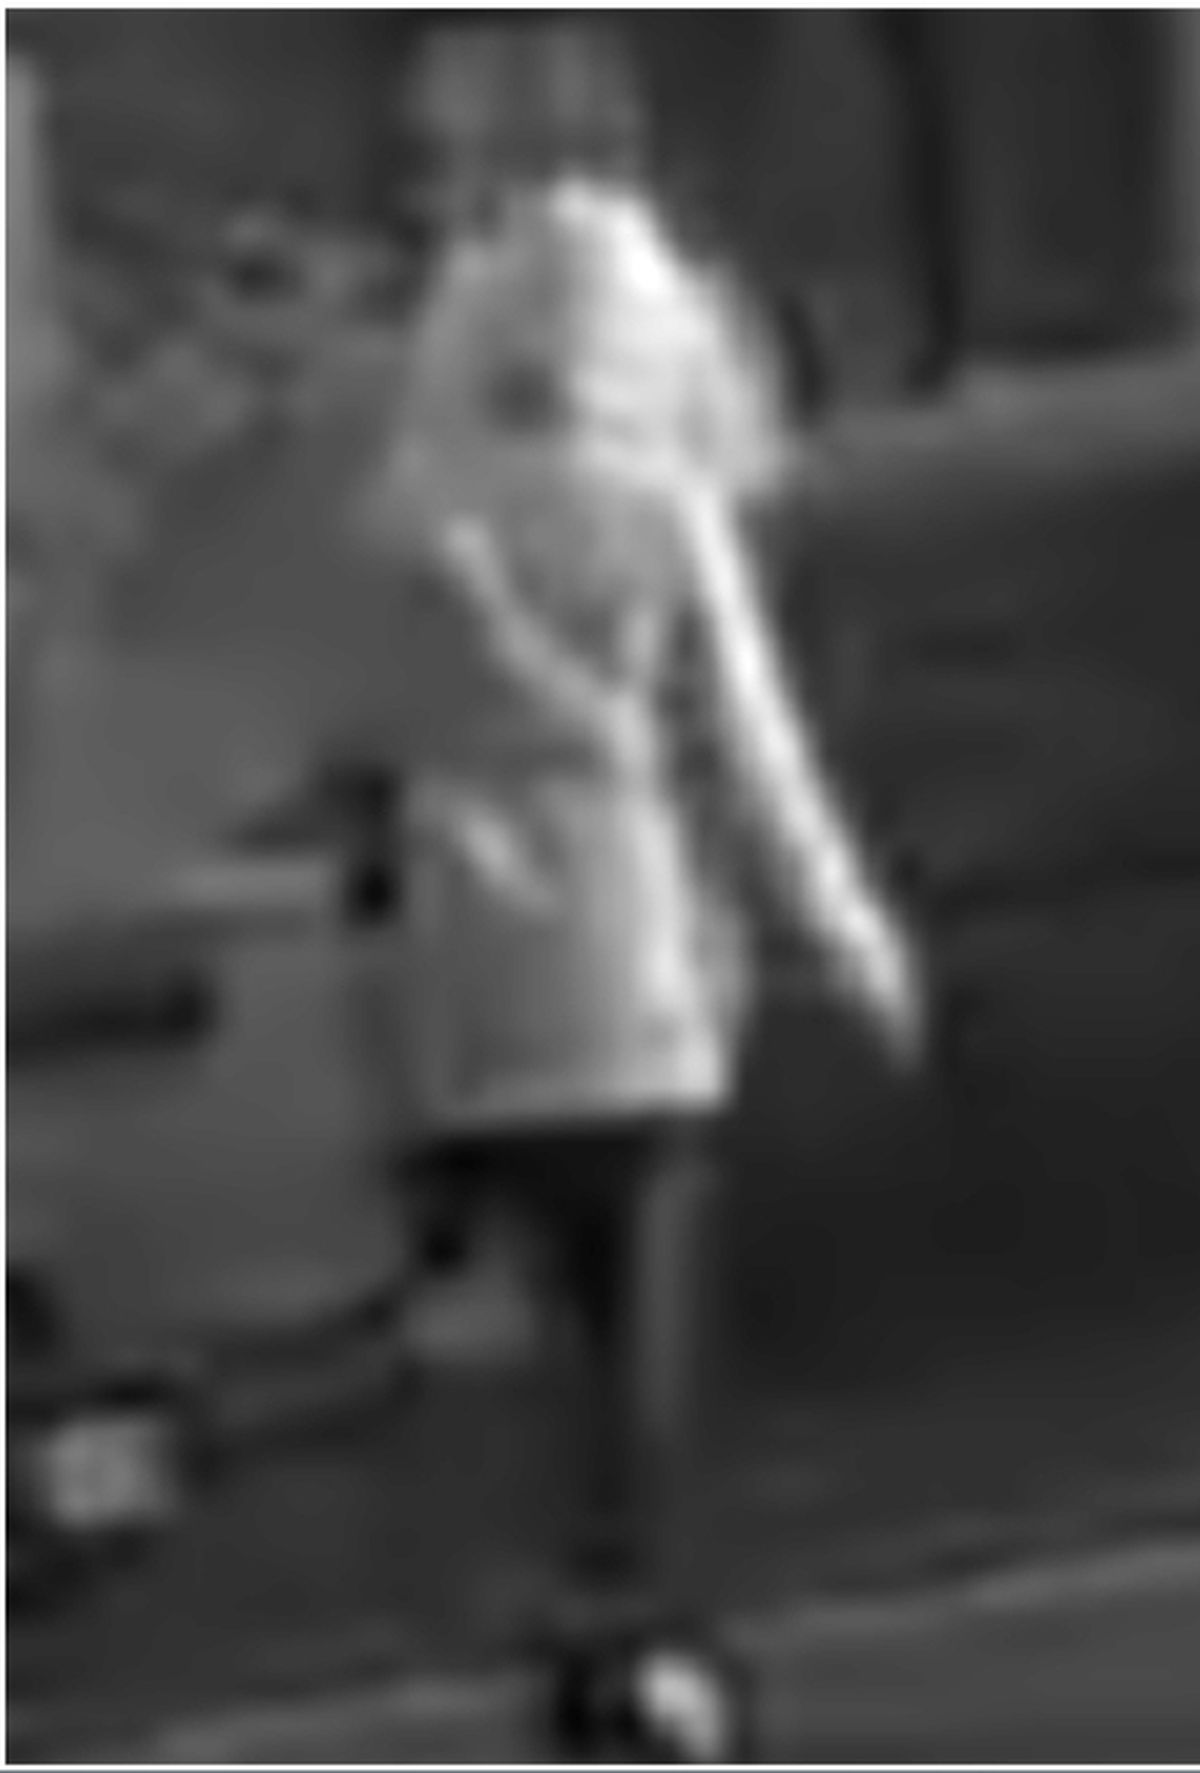 CCTV images released by police of the mysterious female figure